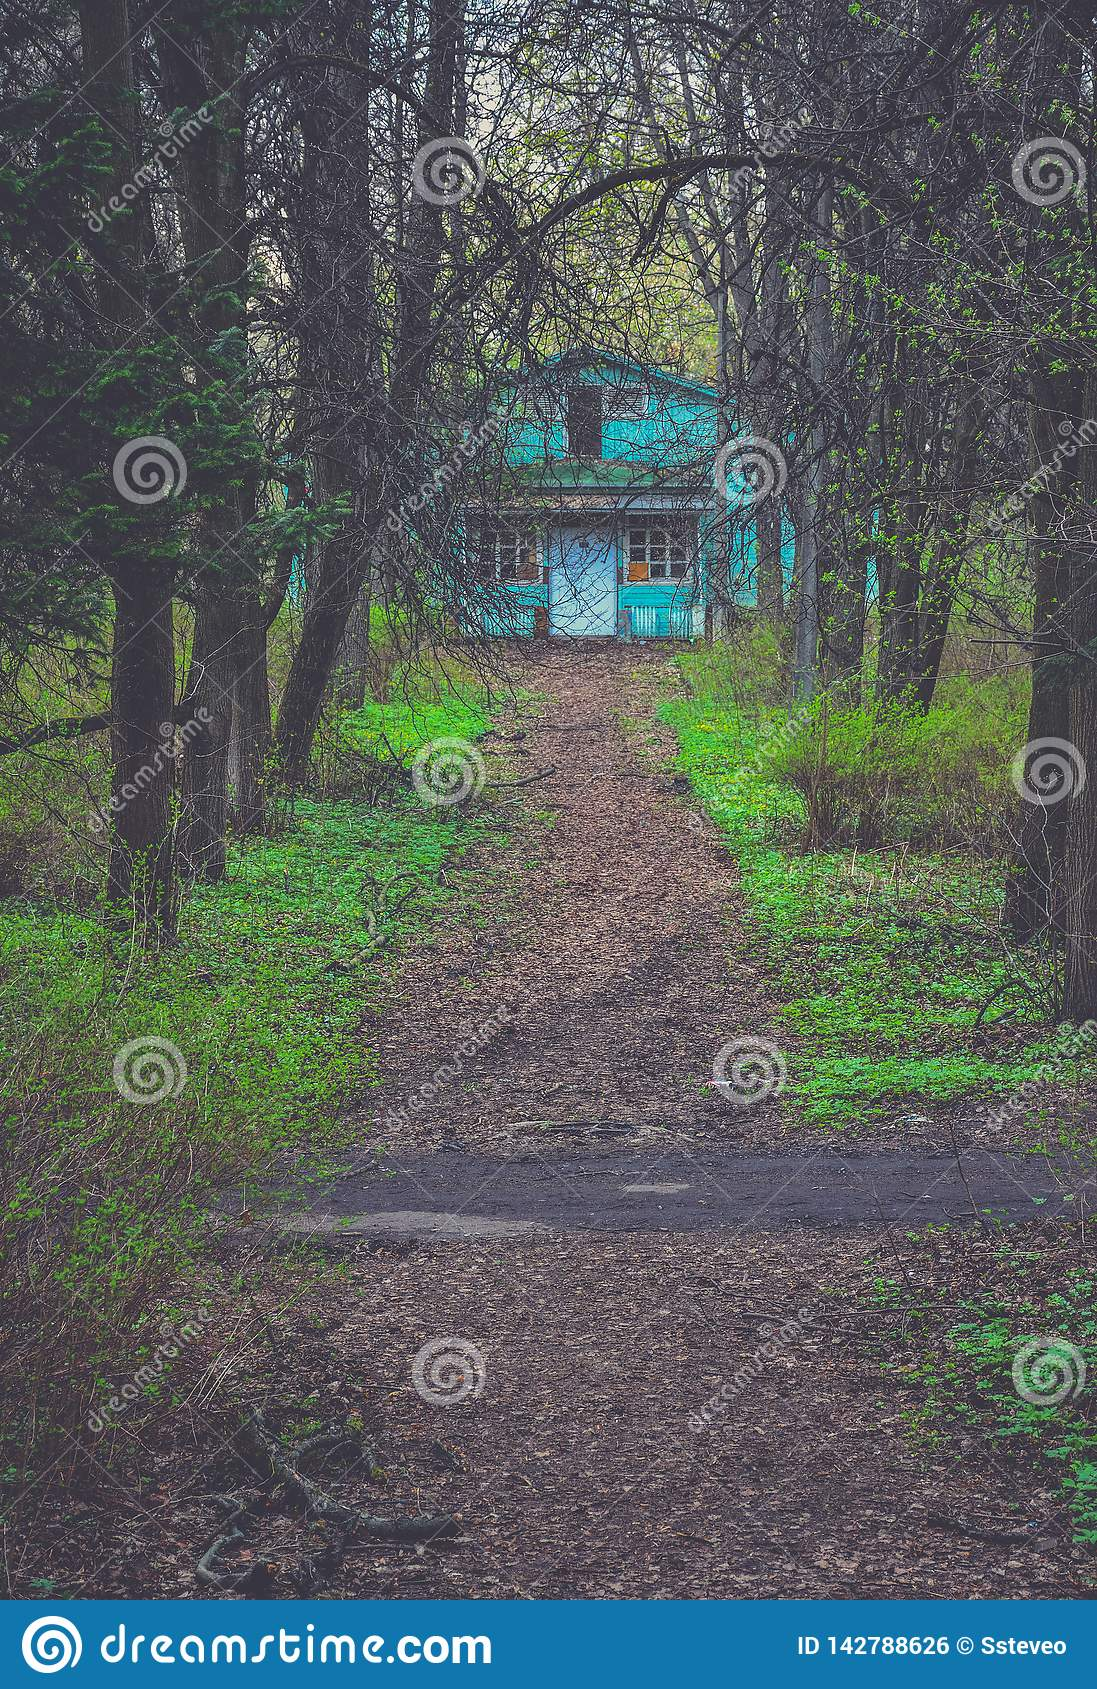 Road to the house in the forest